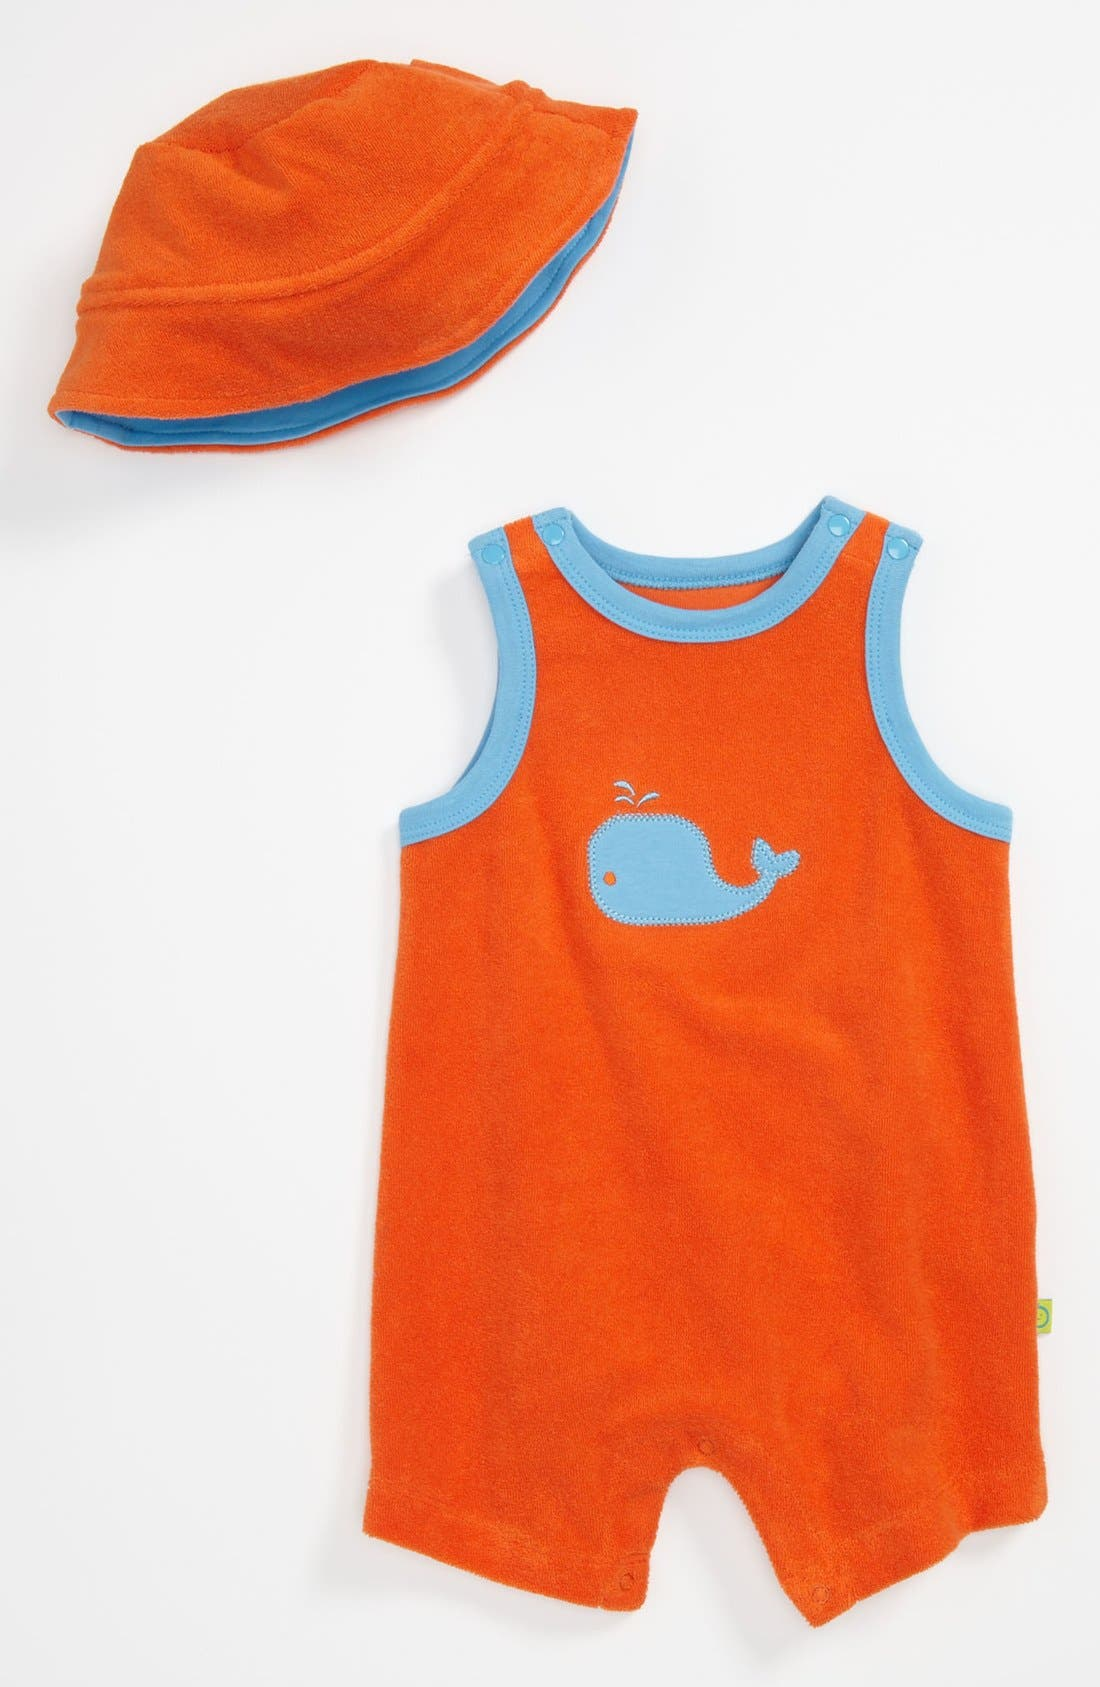 Alternate Image 1 Selected - Offspring 'Flame Whale' Romper & Hat (Baby)